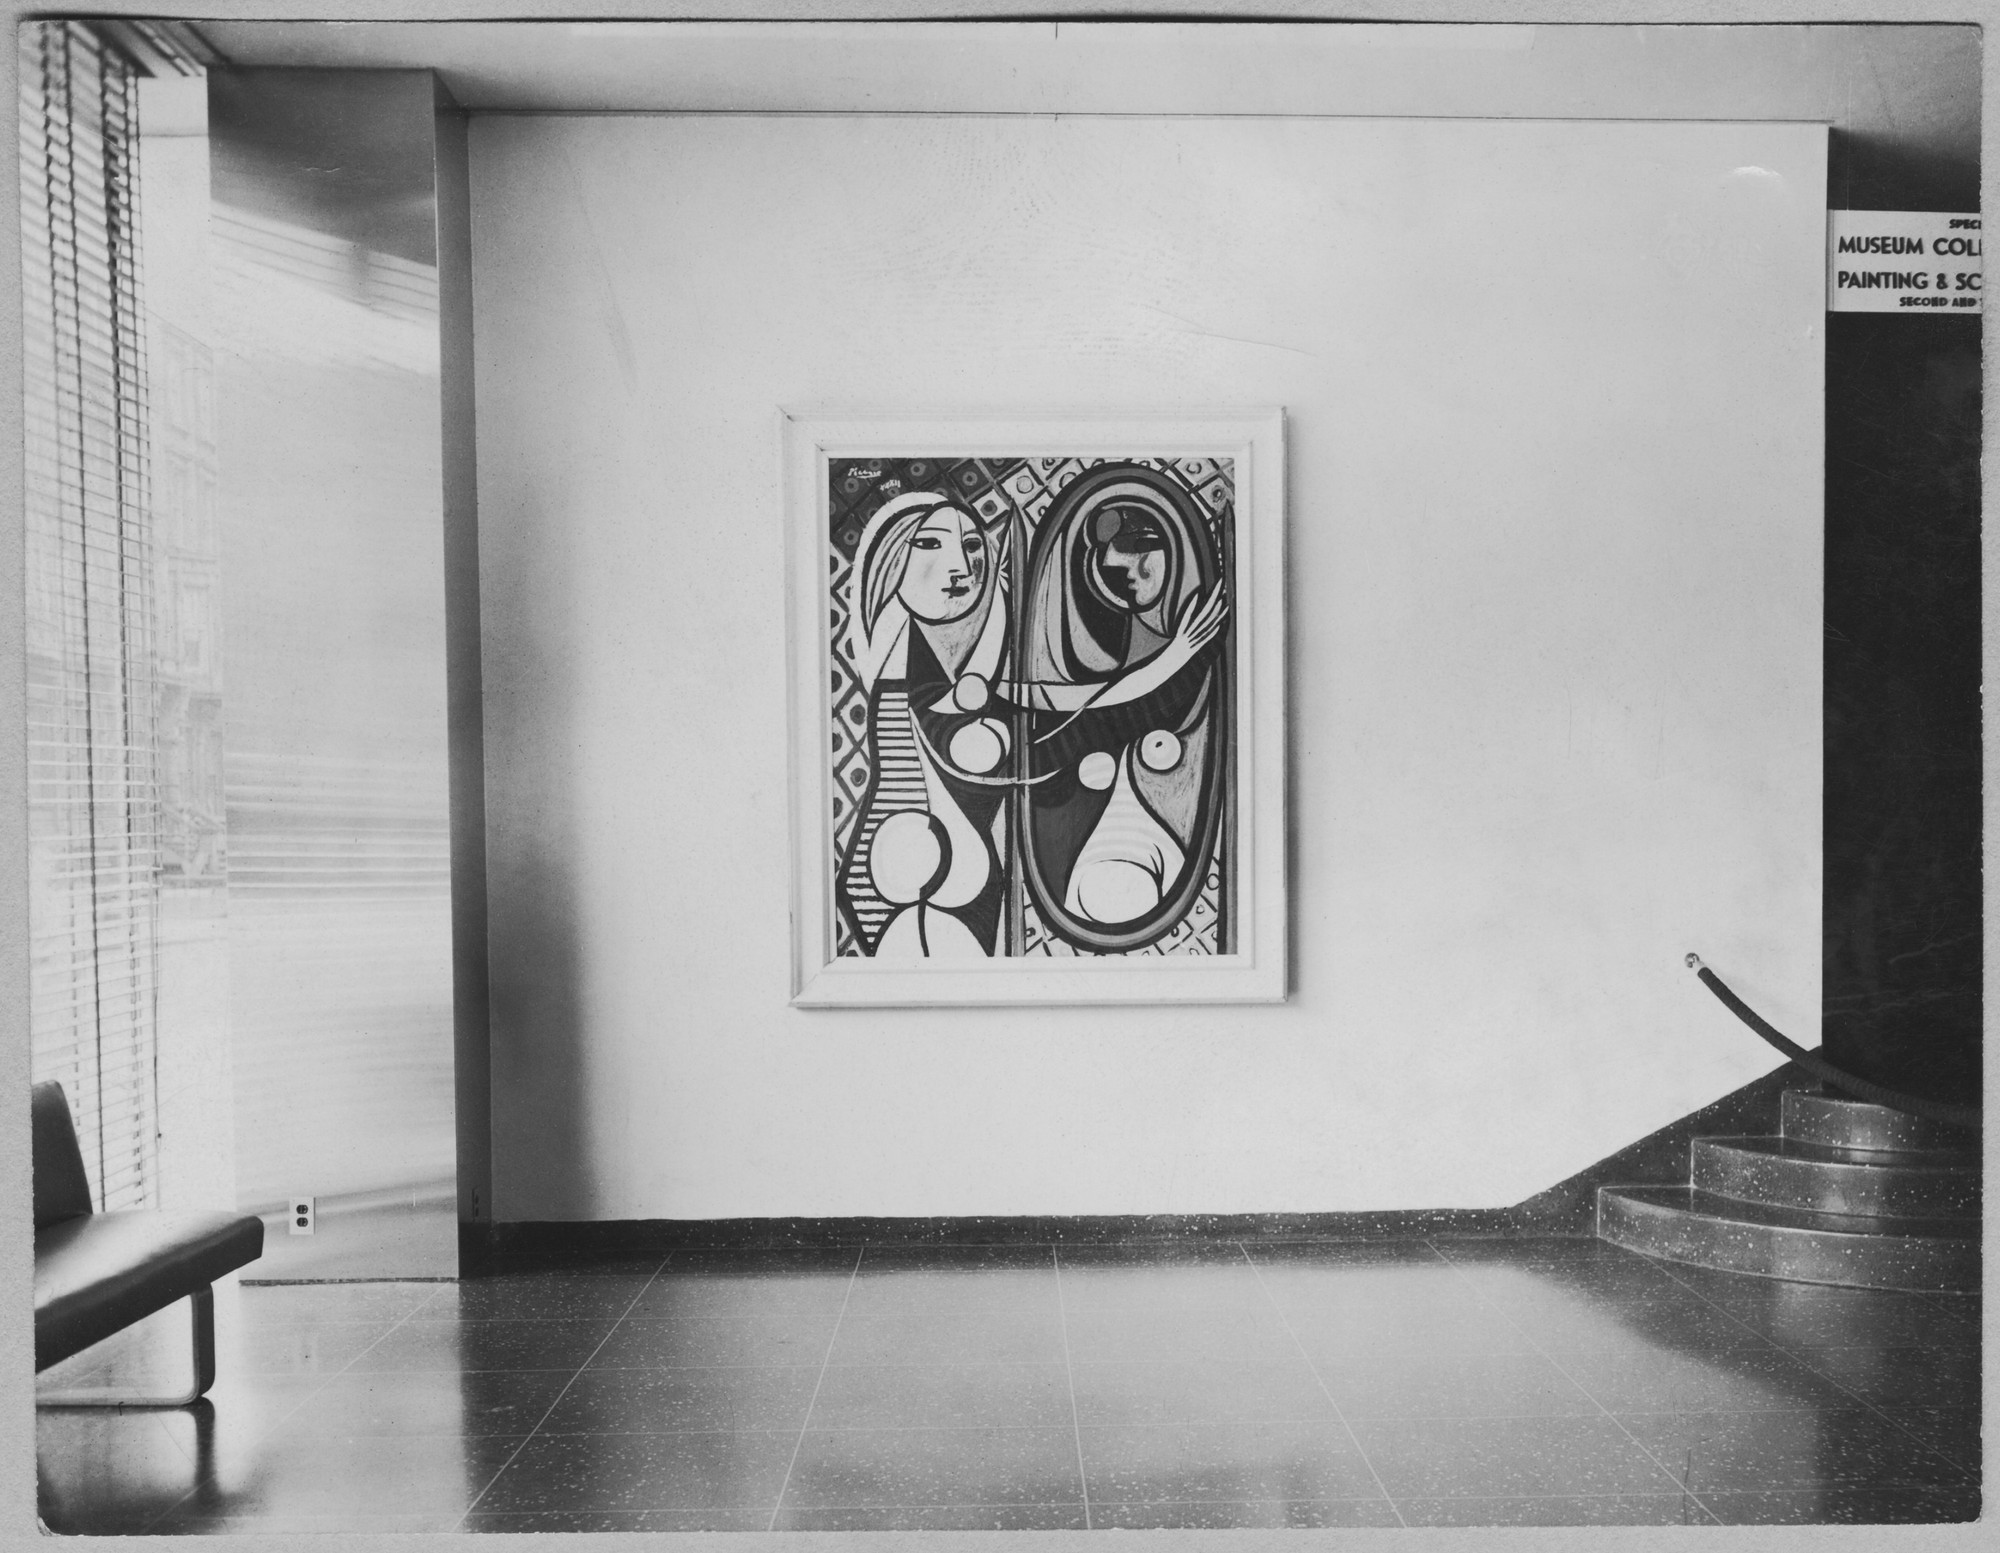 "Installation view of the exhibition, ""The Museum Collection of Painting and Sculpture."" June 20, 1945–January 13, 1946 2nd floor; June 20, 1945–February 13, 1946 3rd floor. Photographic Archive. The Museum of Modern Art Archives, New York. IN290.1A"